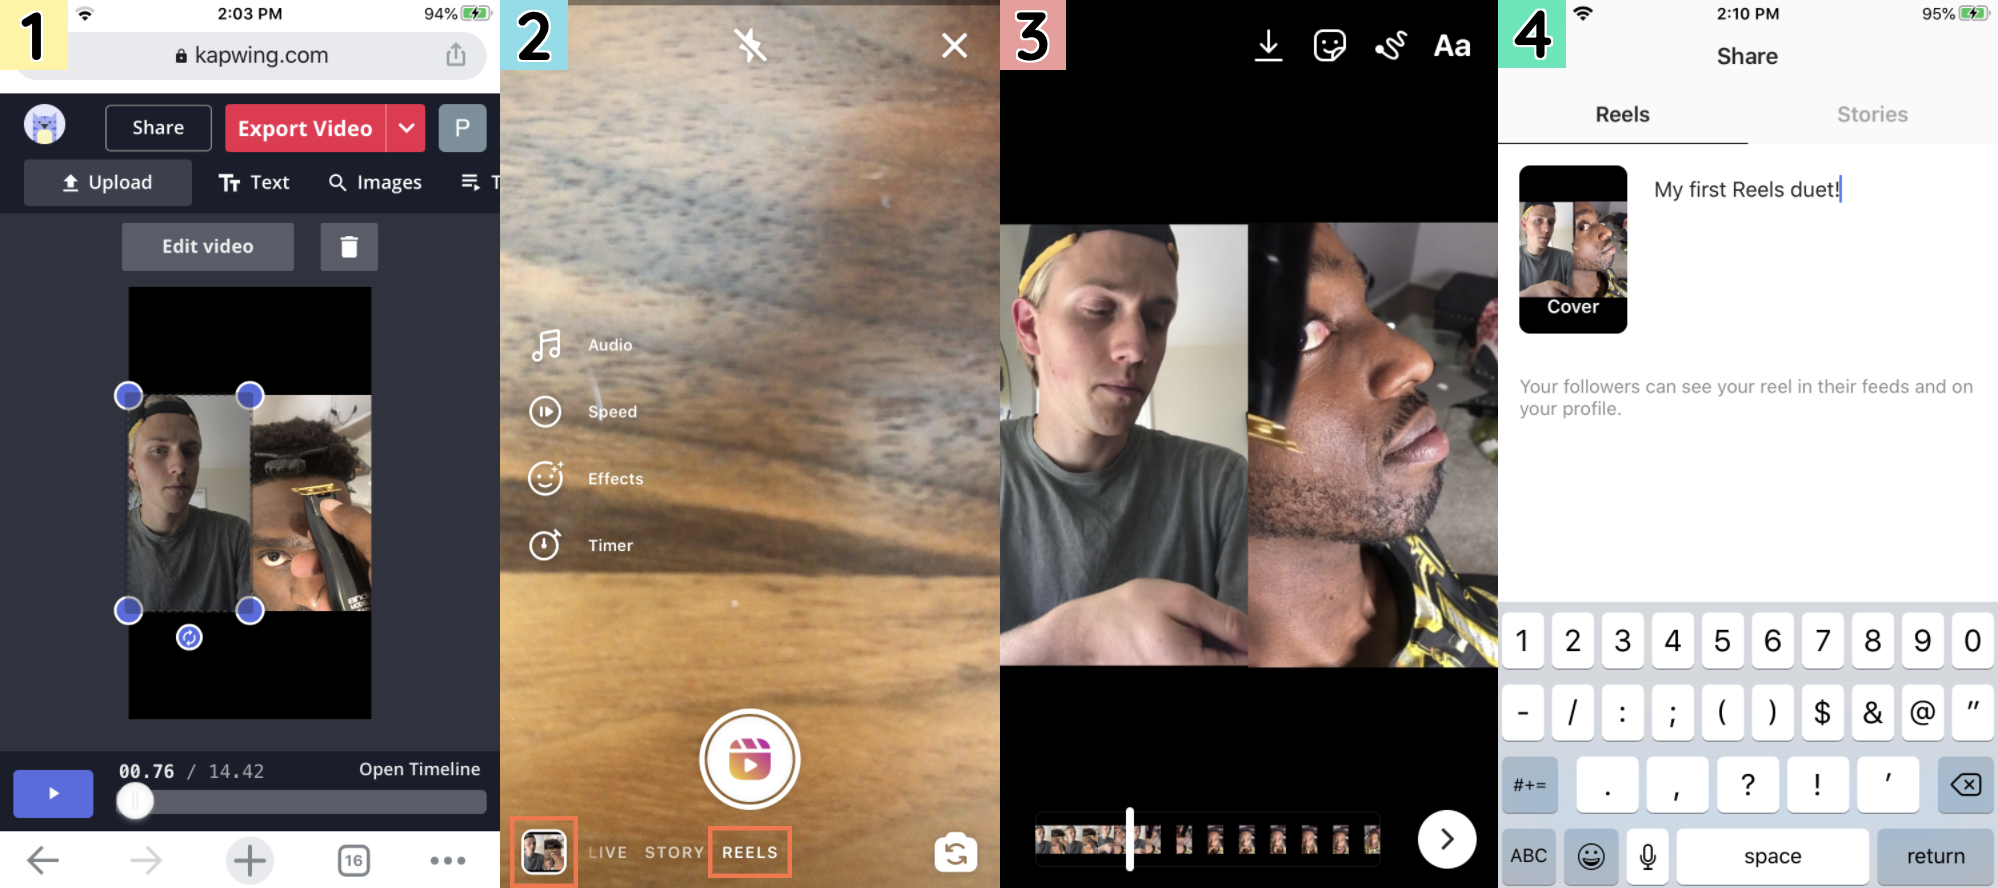 Screenshots showing how to share Kapwing videos on IG Reels.